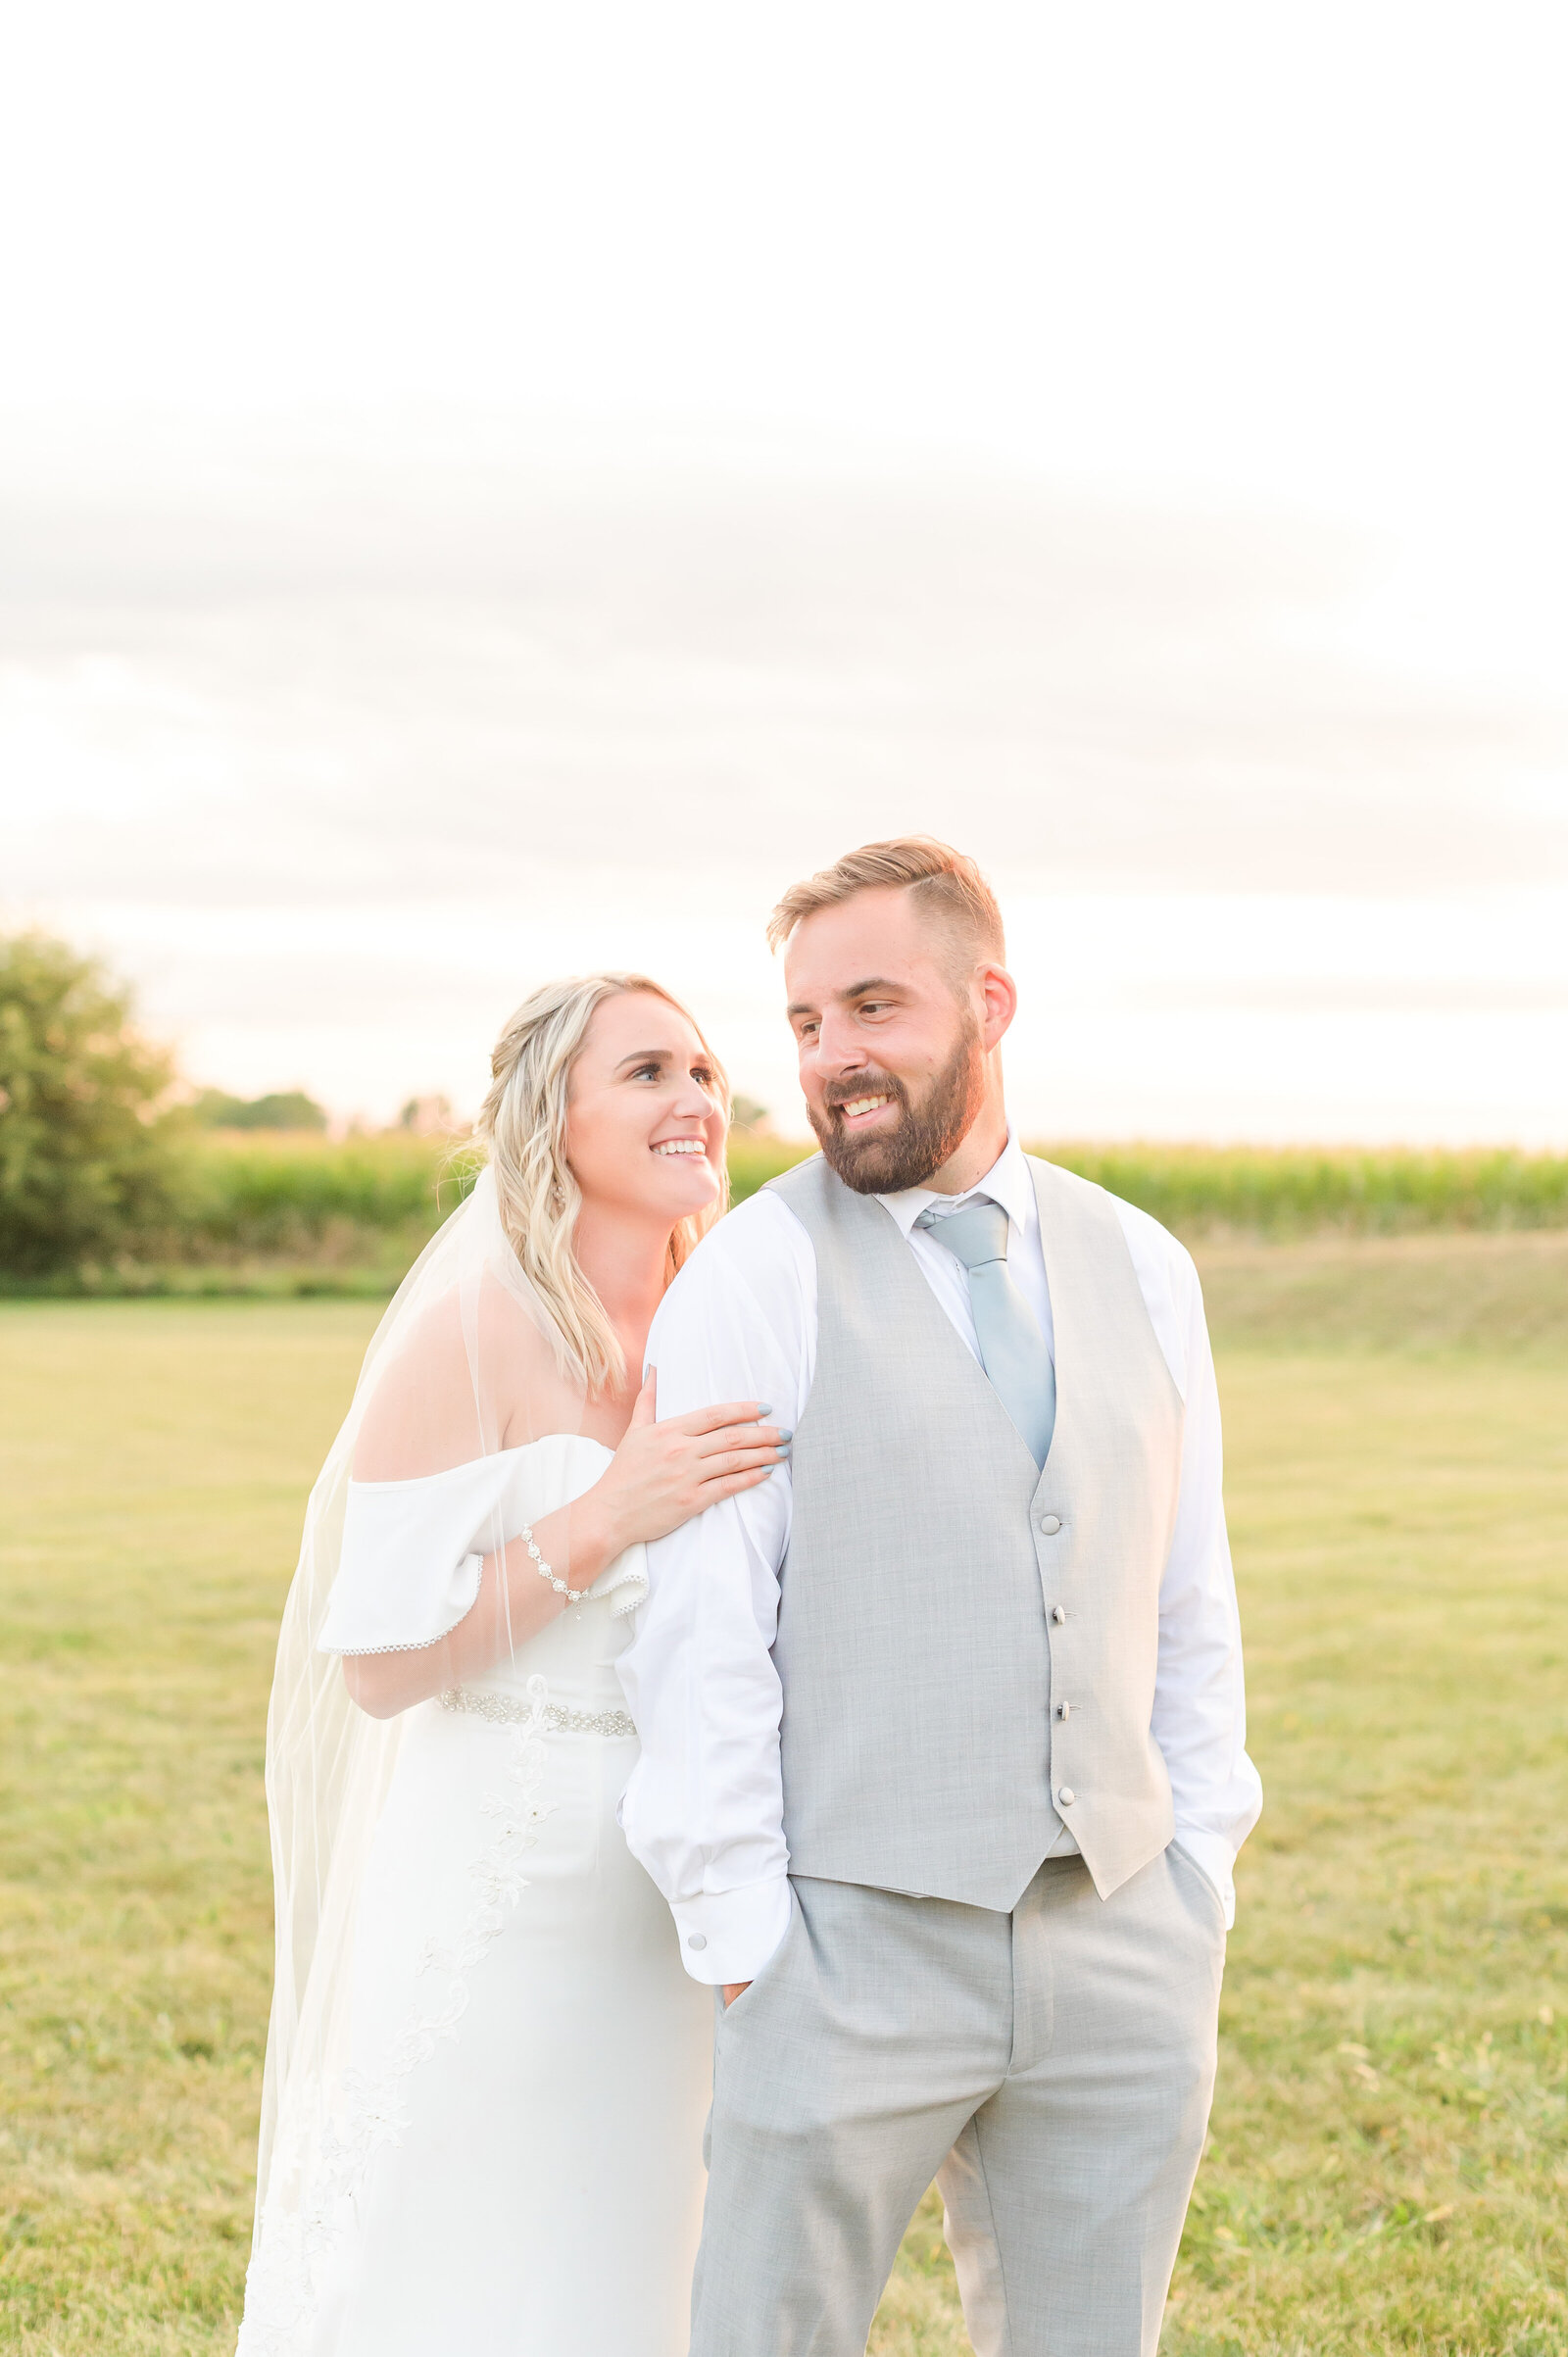 Summer Wedding at Lizton Lodge